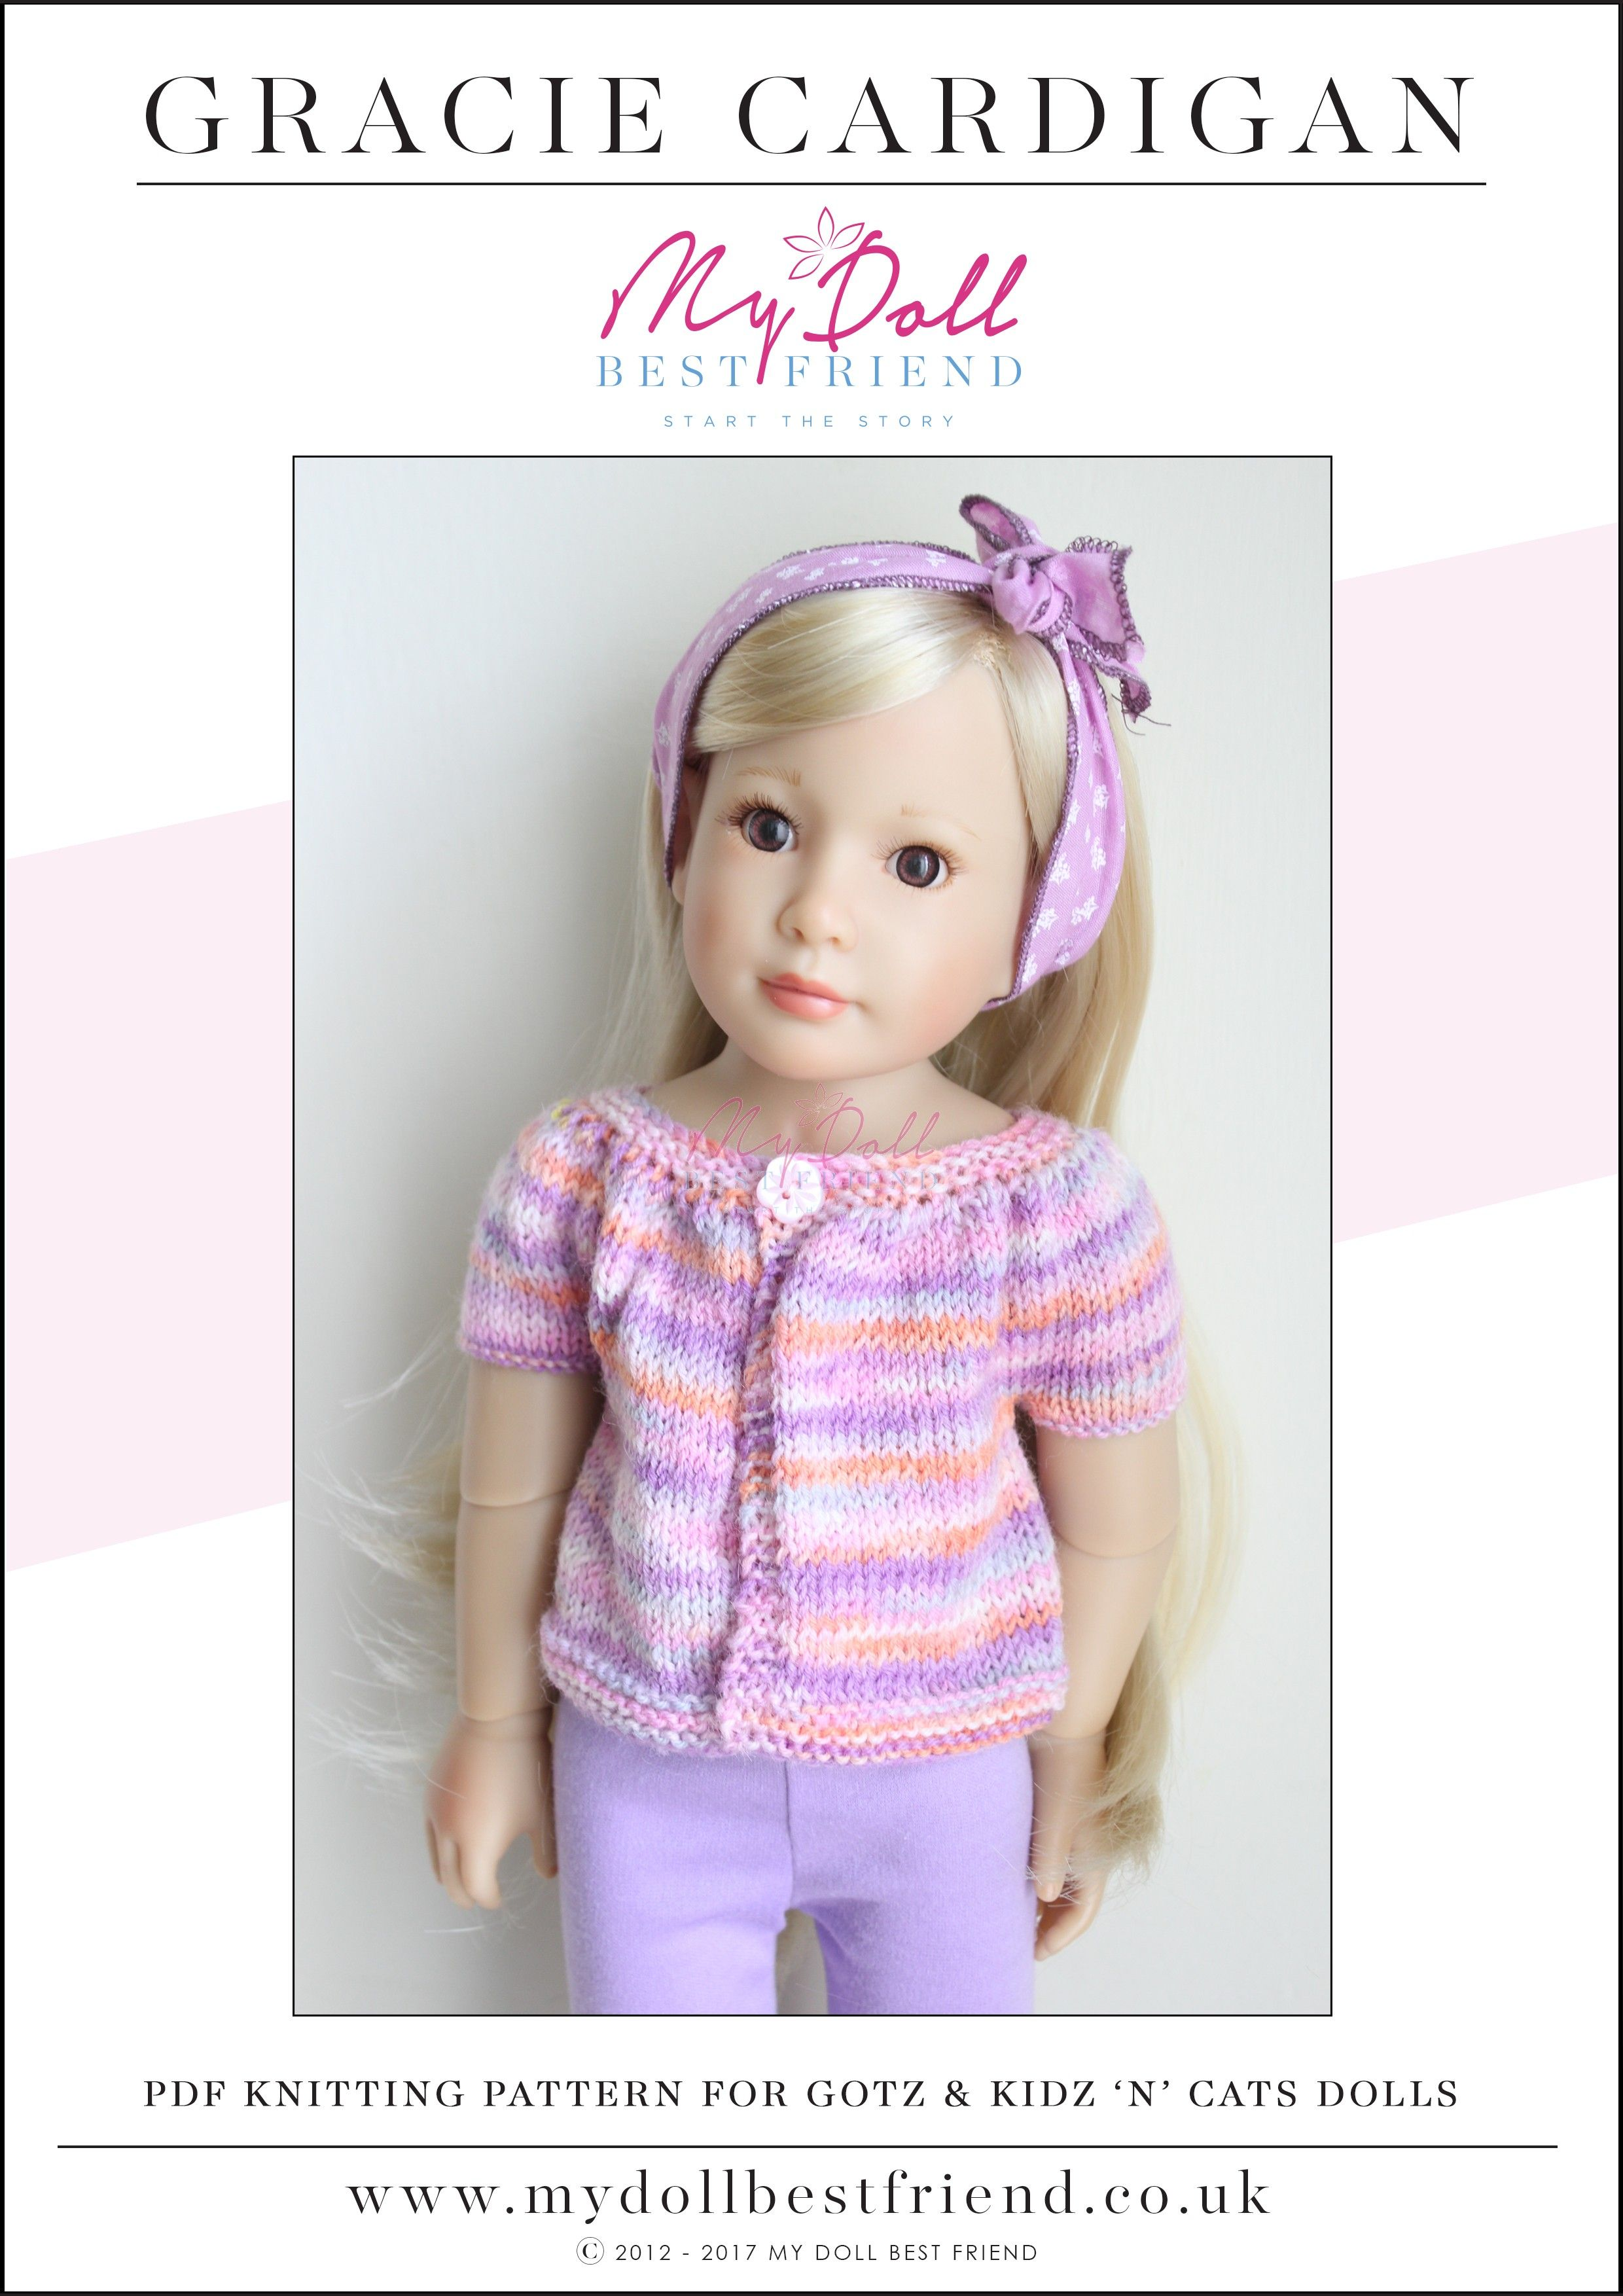 Doll Cardigan Knitting Pattern 45-50cm: Gracie Cardigan | Dolls ...